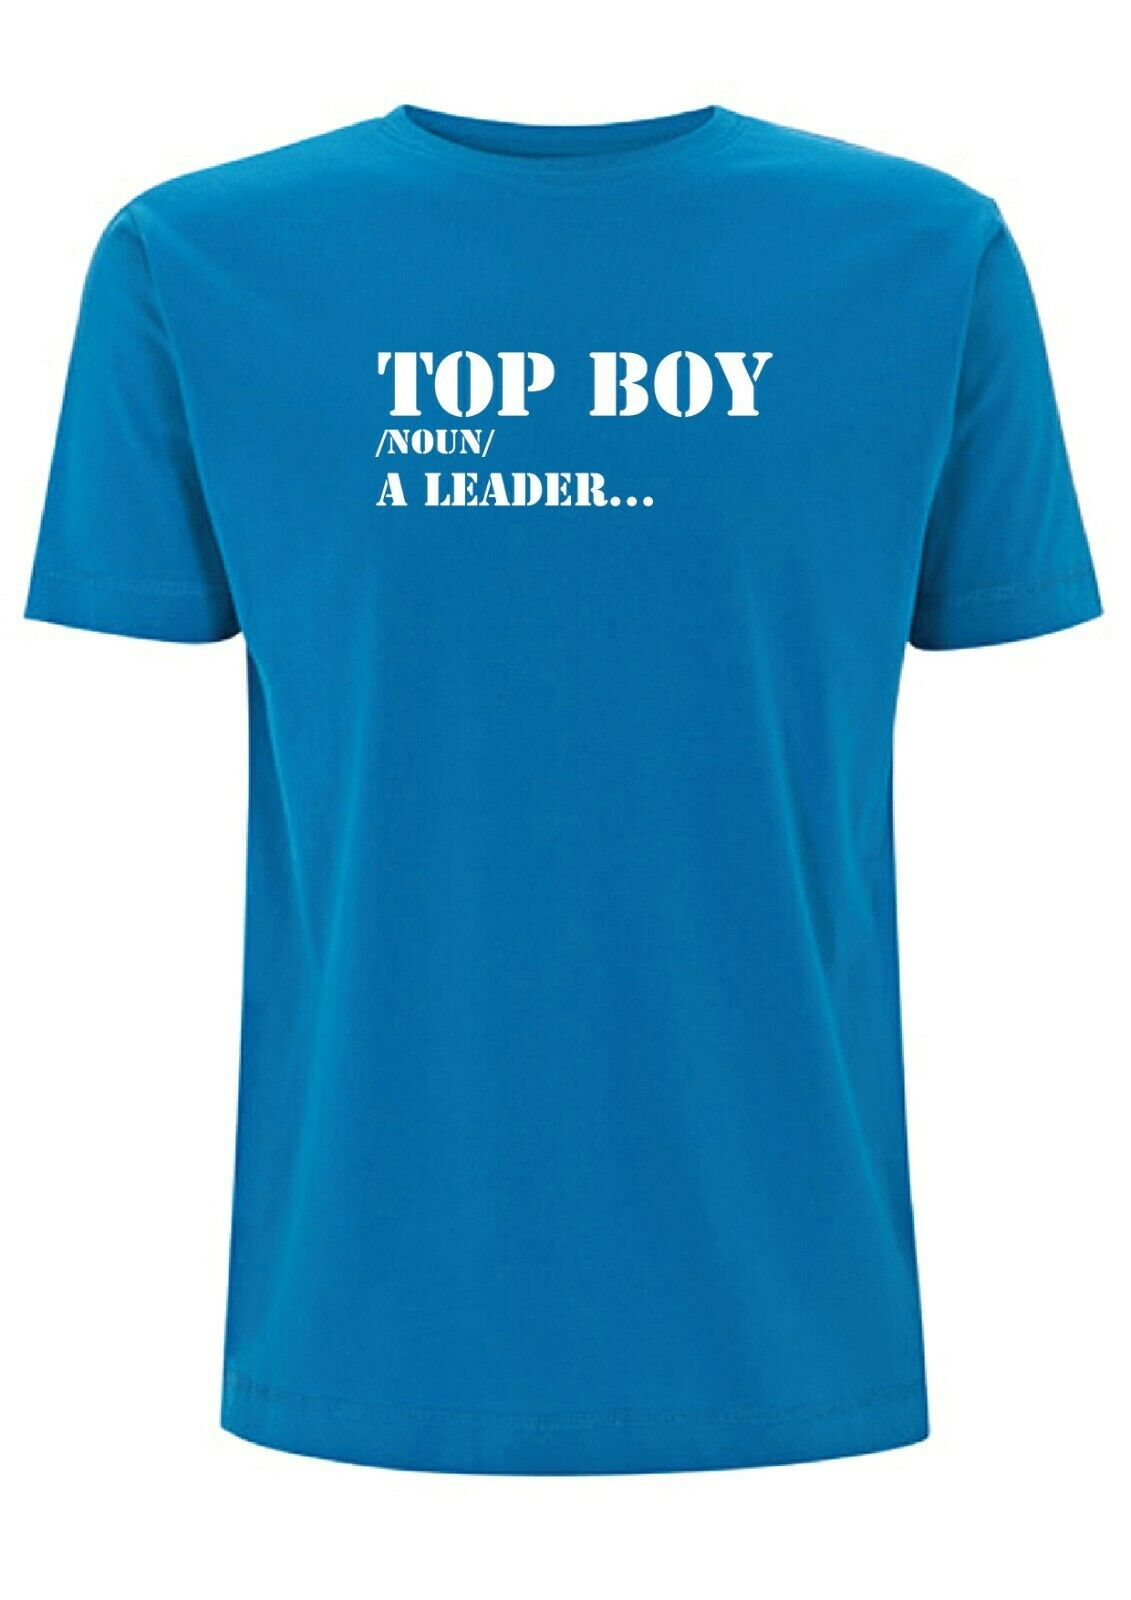 Top Boy Meaning T Shirt Mens Top Leader Topboy TV Gang Hustler Urban Dictionary 2020 High quality Brand T shirt Casual Short sle image